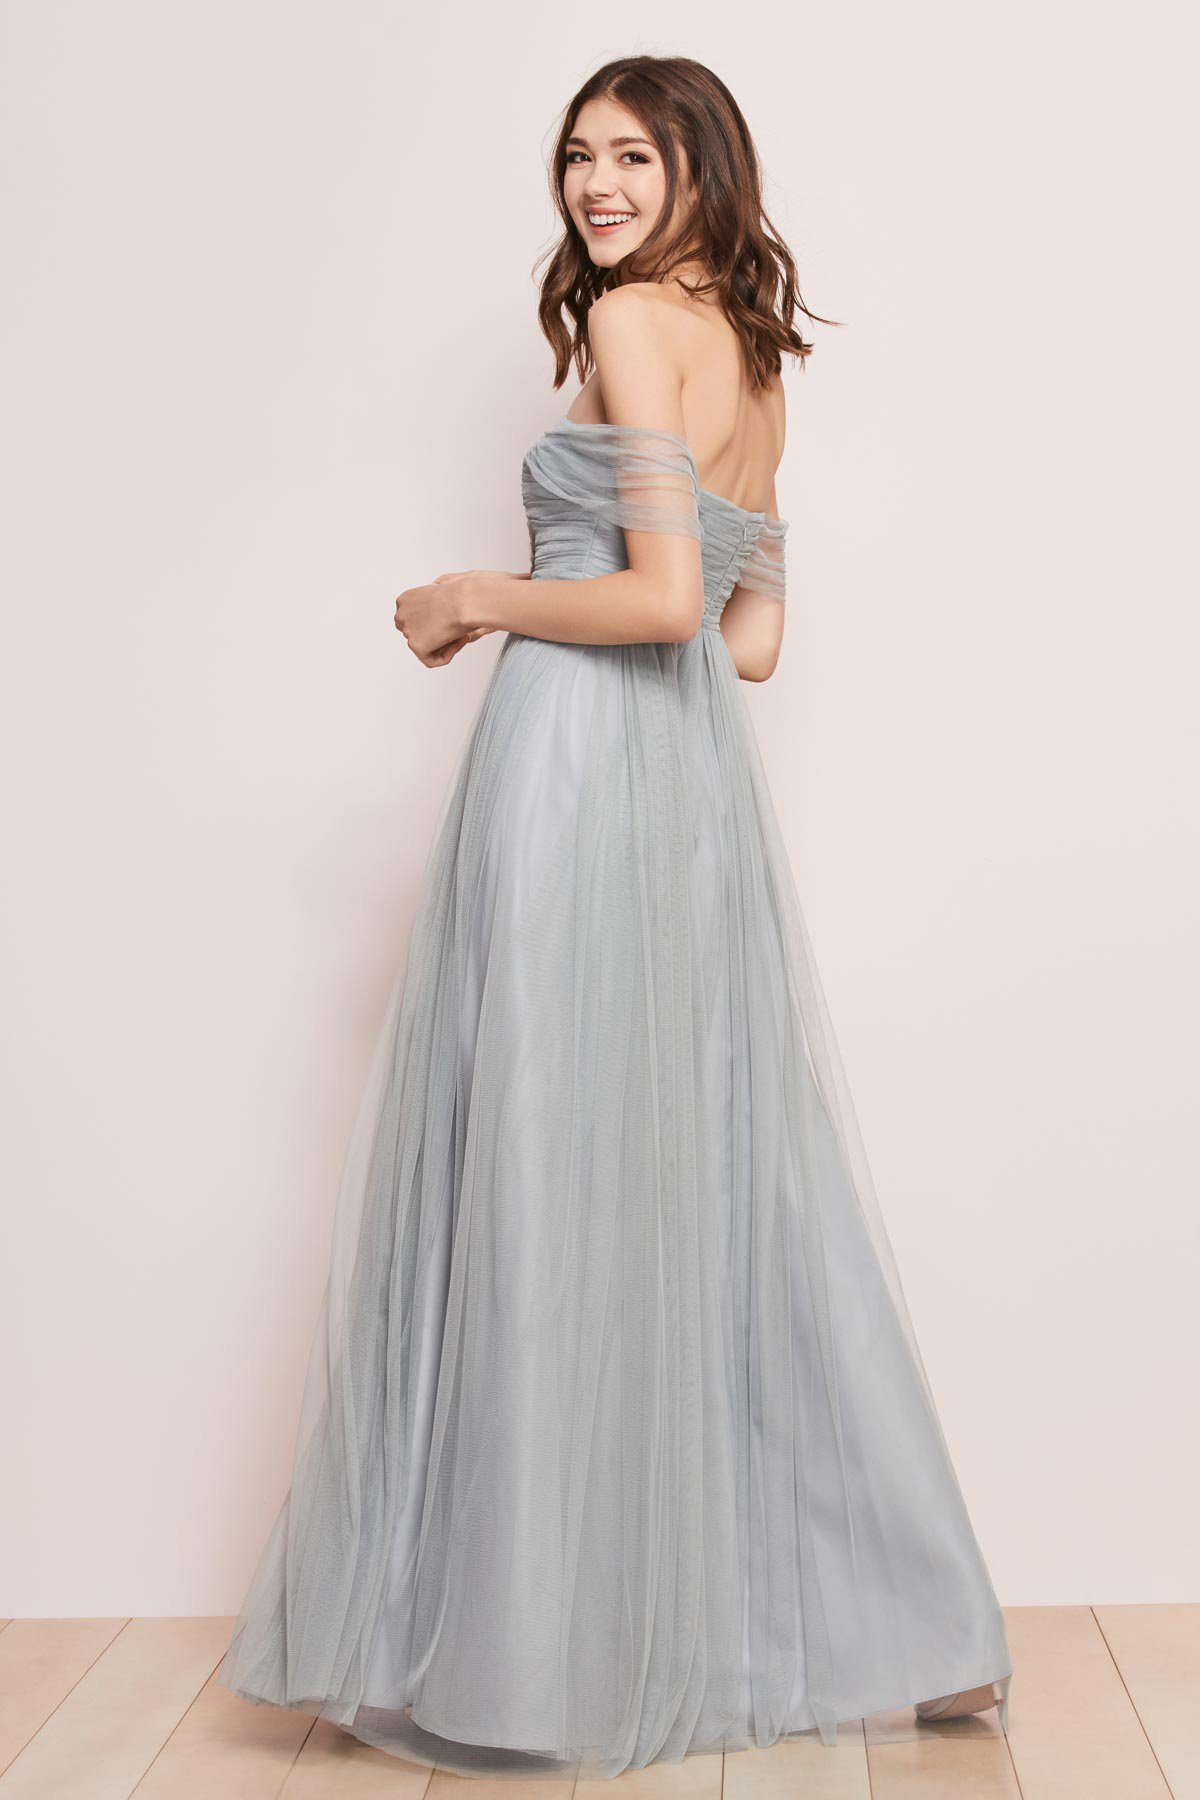 Gilded Social style WTOO by Watters Bridesmaids style 741 Fynn Full length strapless dress